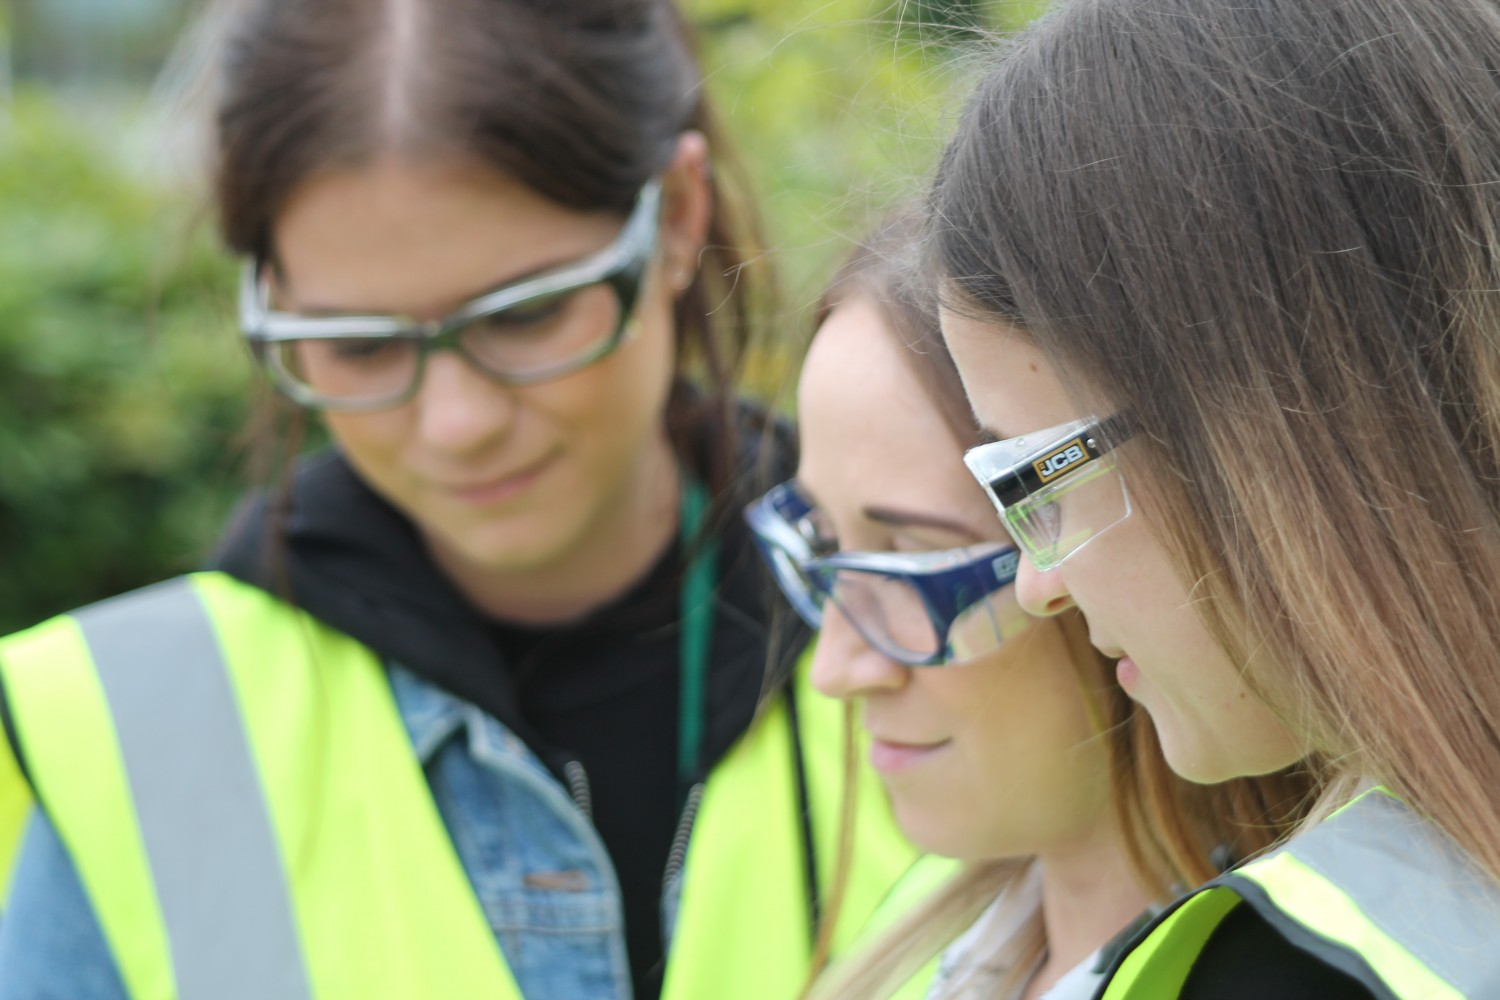 f2883ea70b2a Specsavers adds more exciting frame options to popular JCB range -